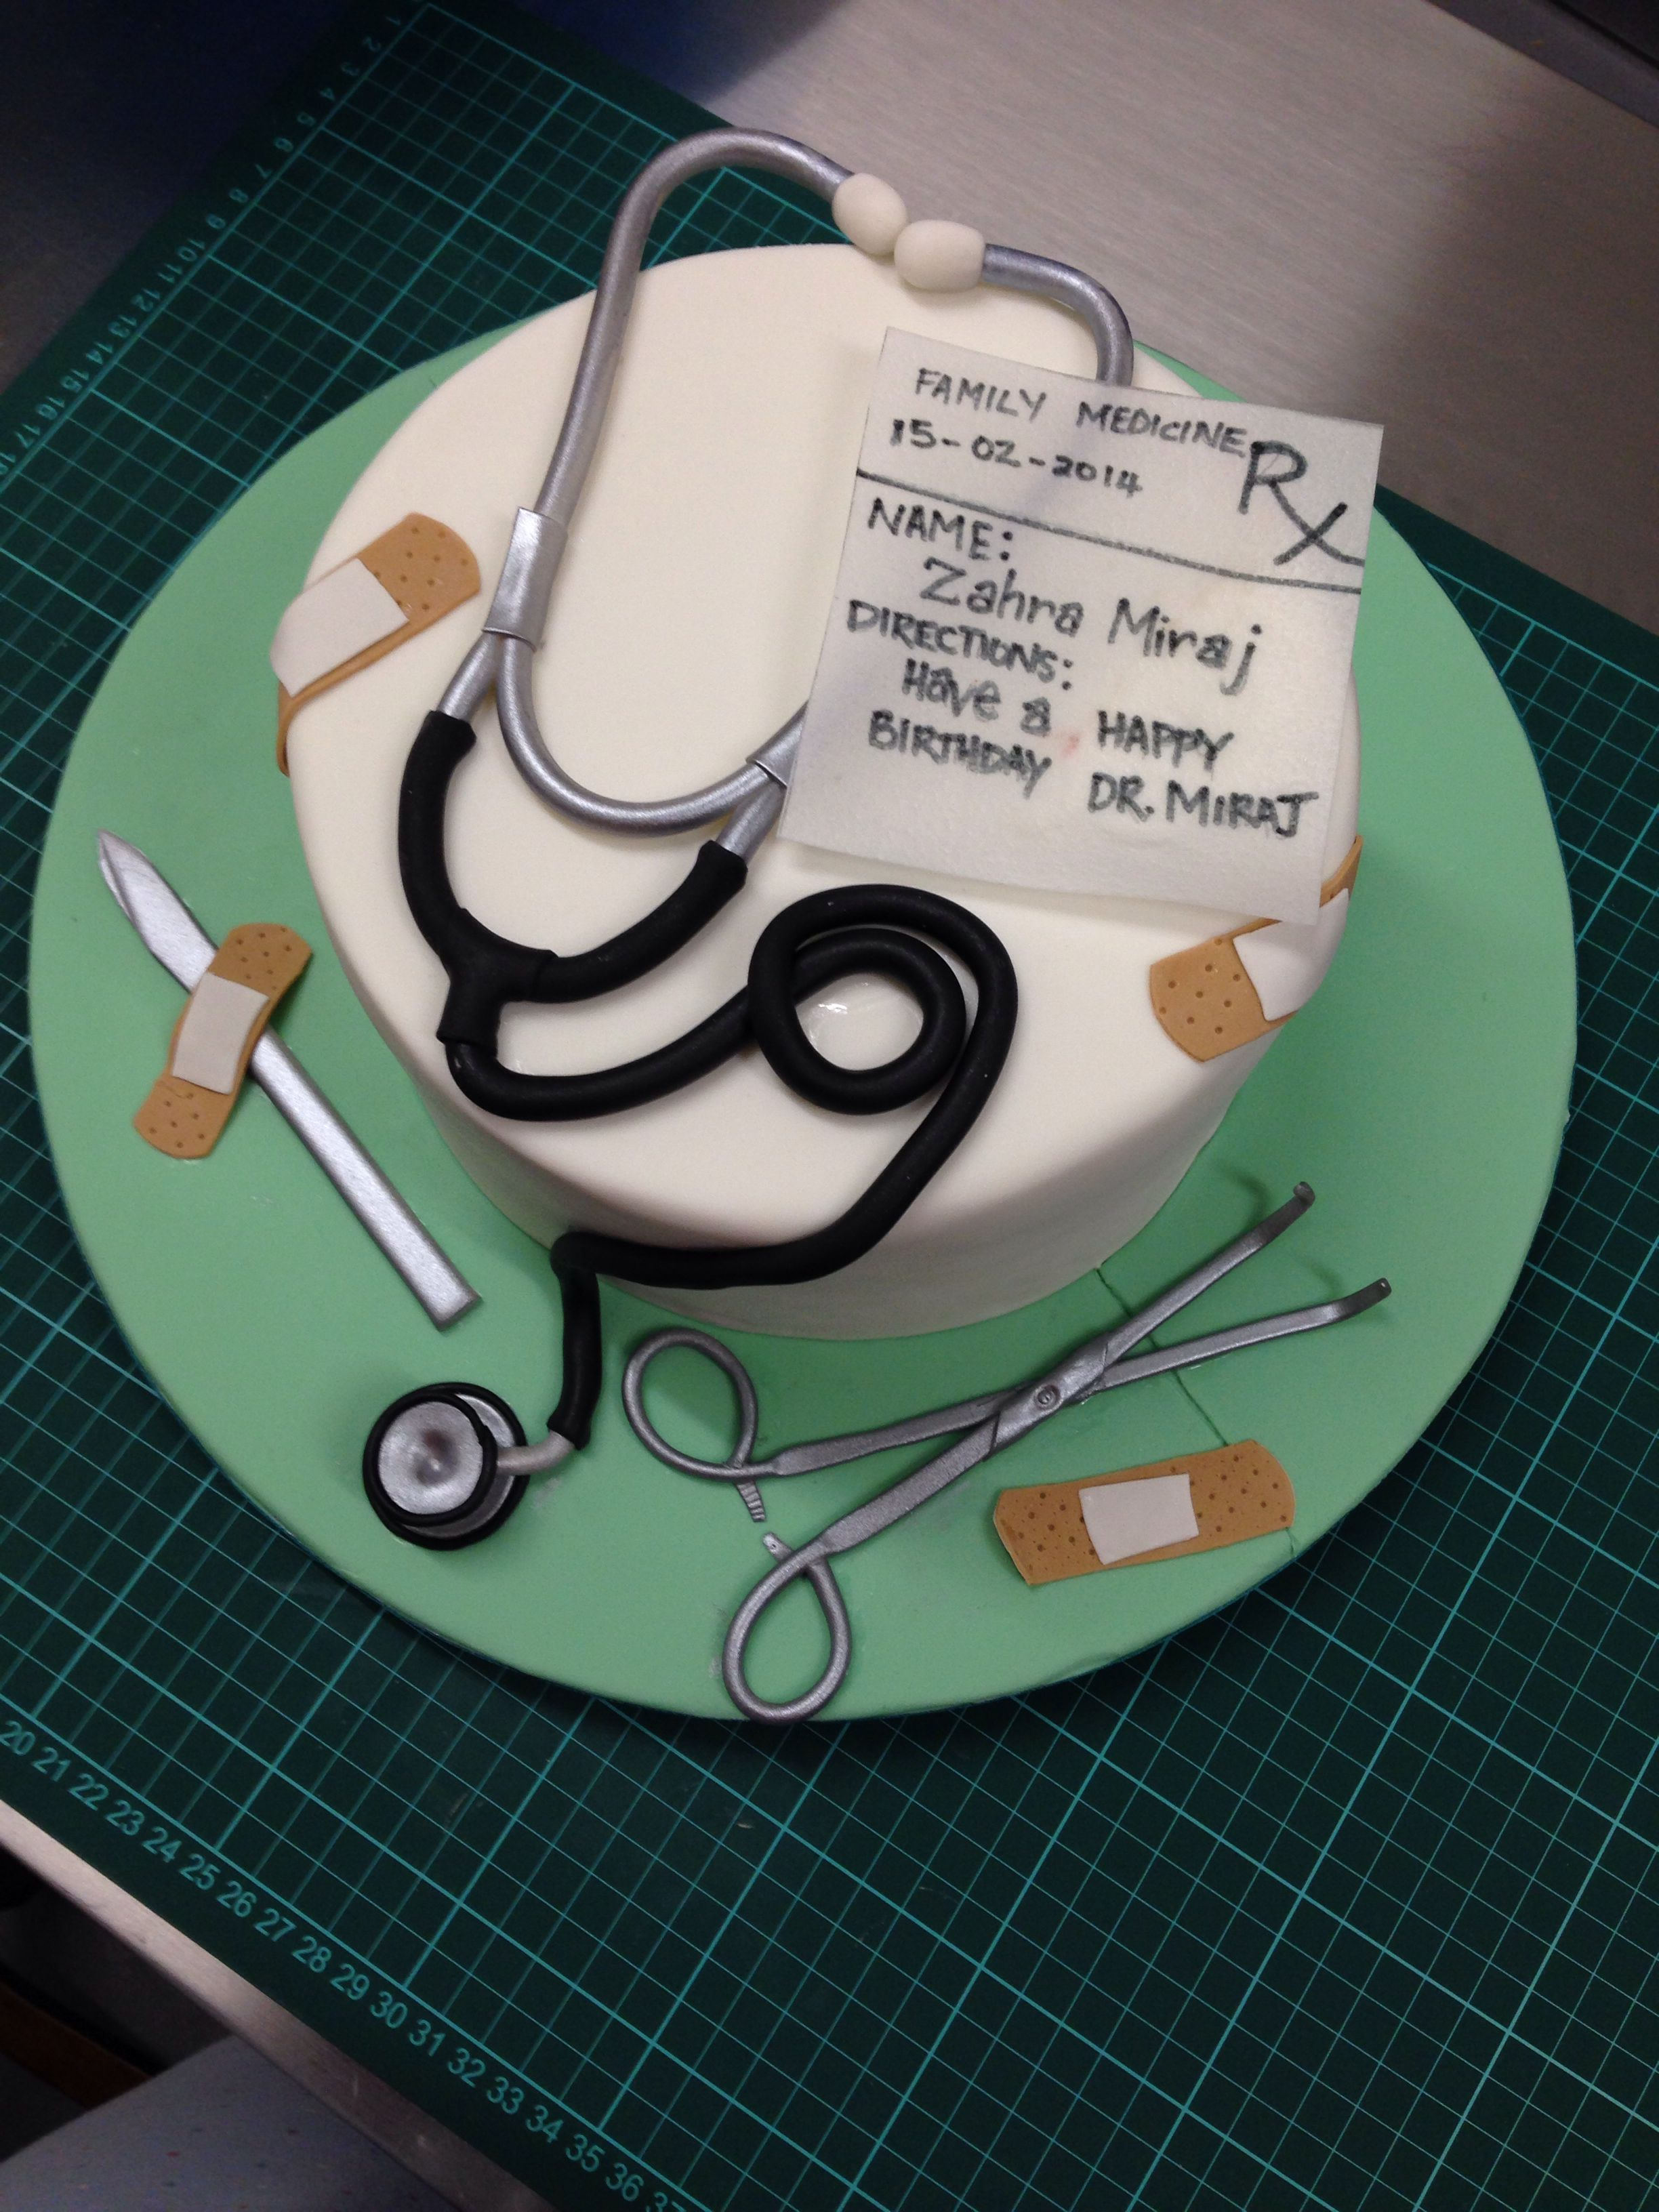 Fabulous Doctor Surgeon Cake With Images Doctor Birthday Cake Funny Birthday Cards Online Chimdamsfinfo